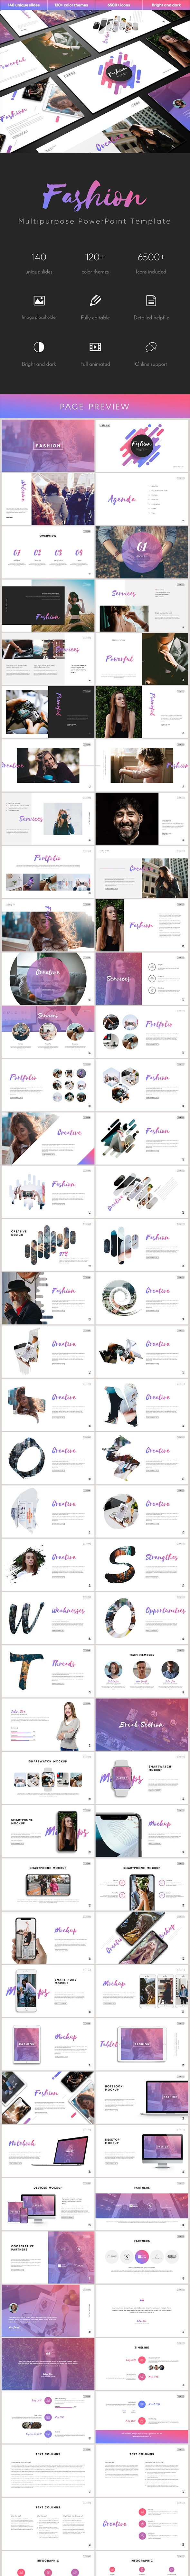 Fashion Multipurpose PowerPoint Template - Business PowerPoint Templates